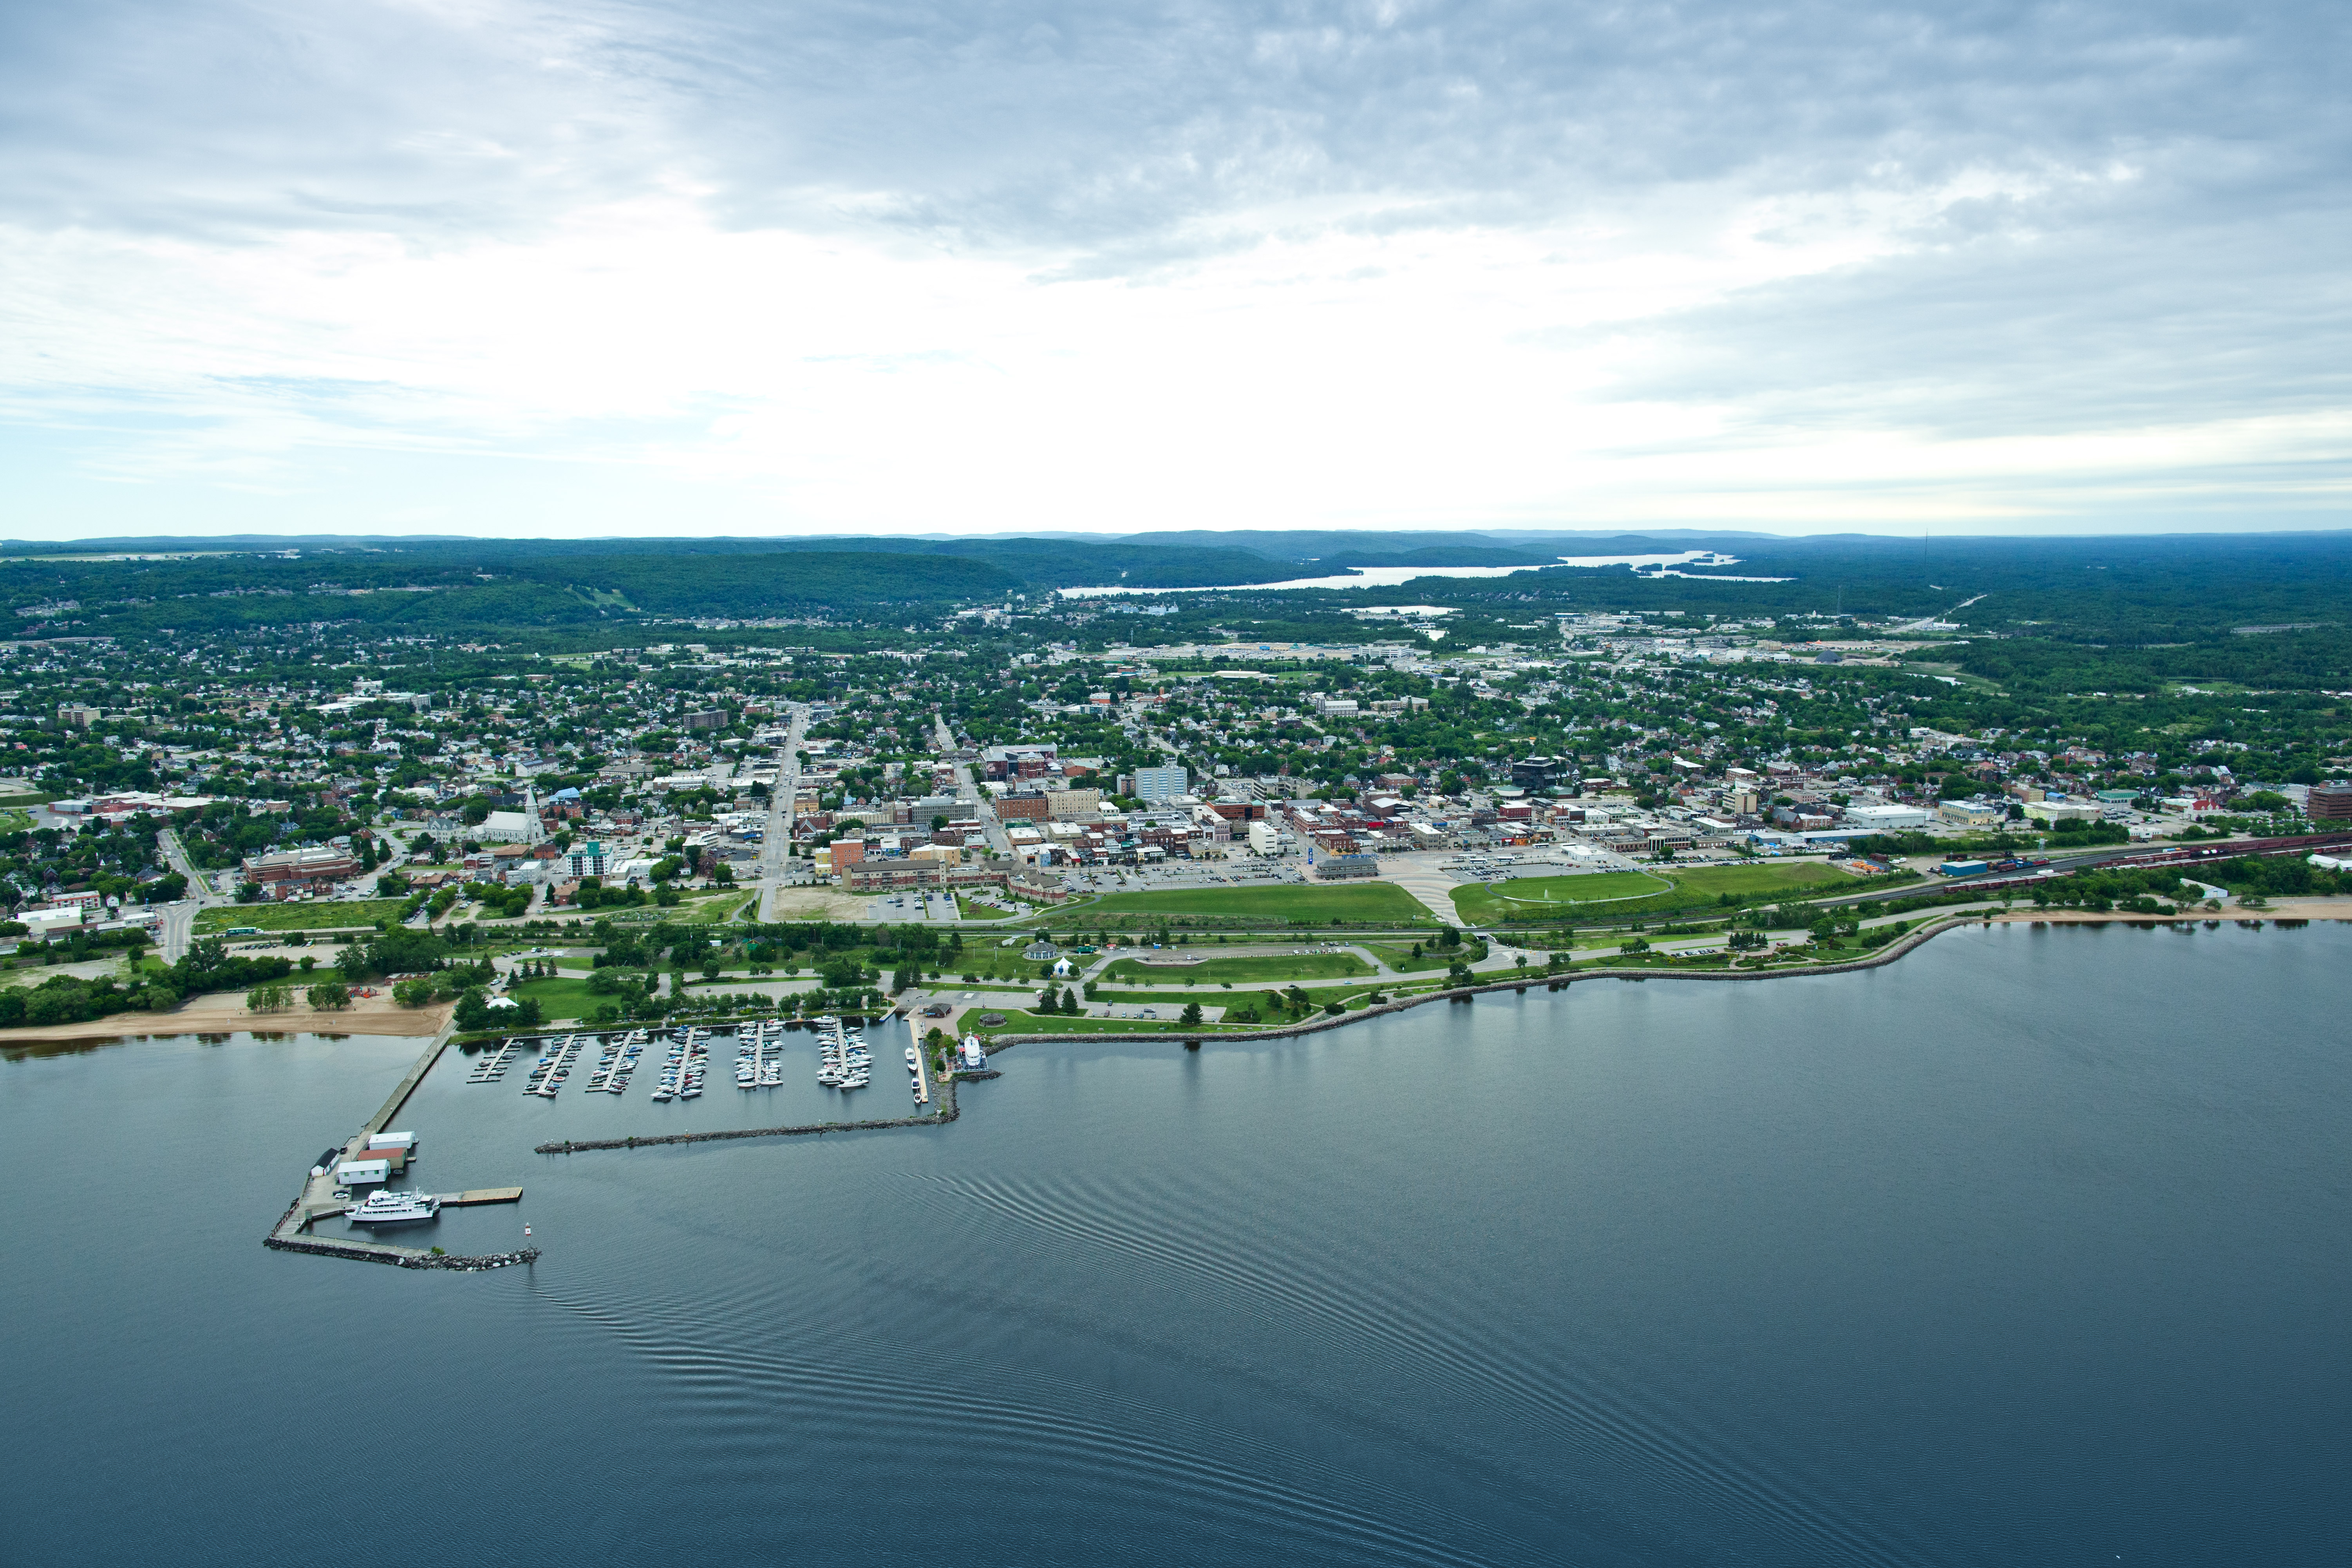 An aerial photo of North Bay's waterfront and downtown